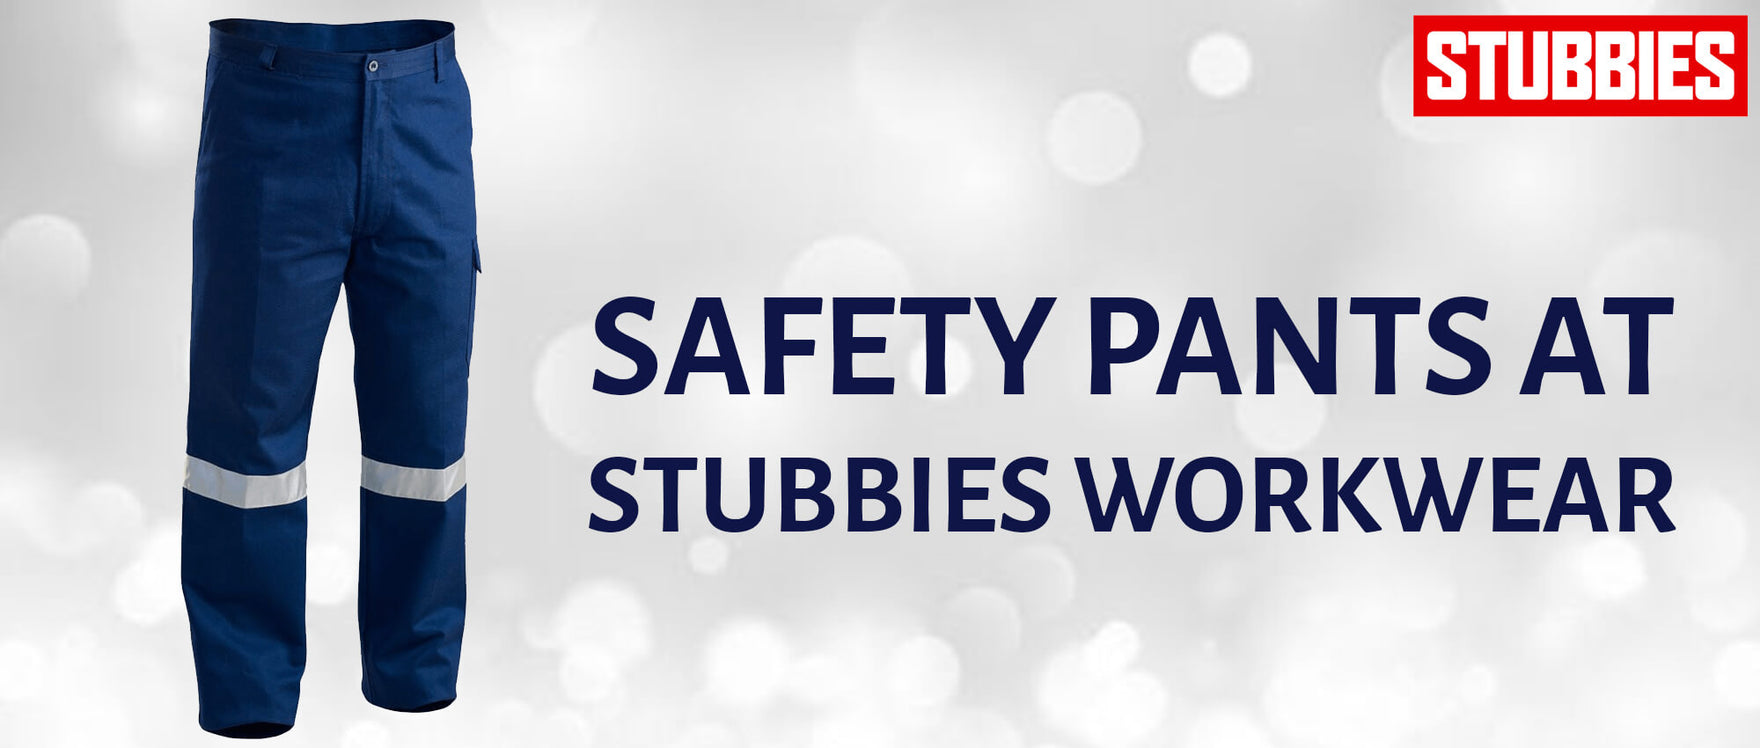 Safety Pants at Stubbies Workwear